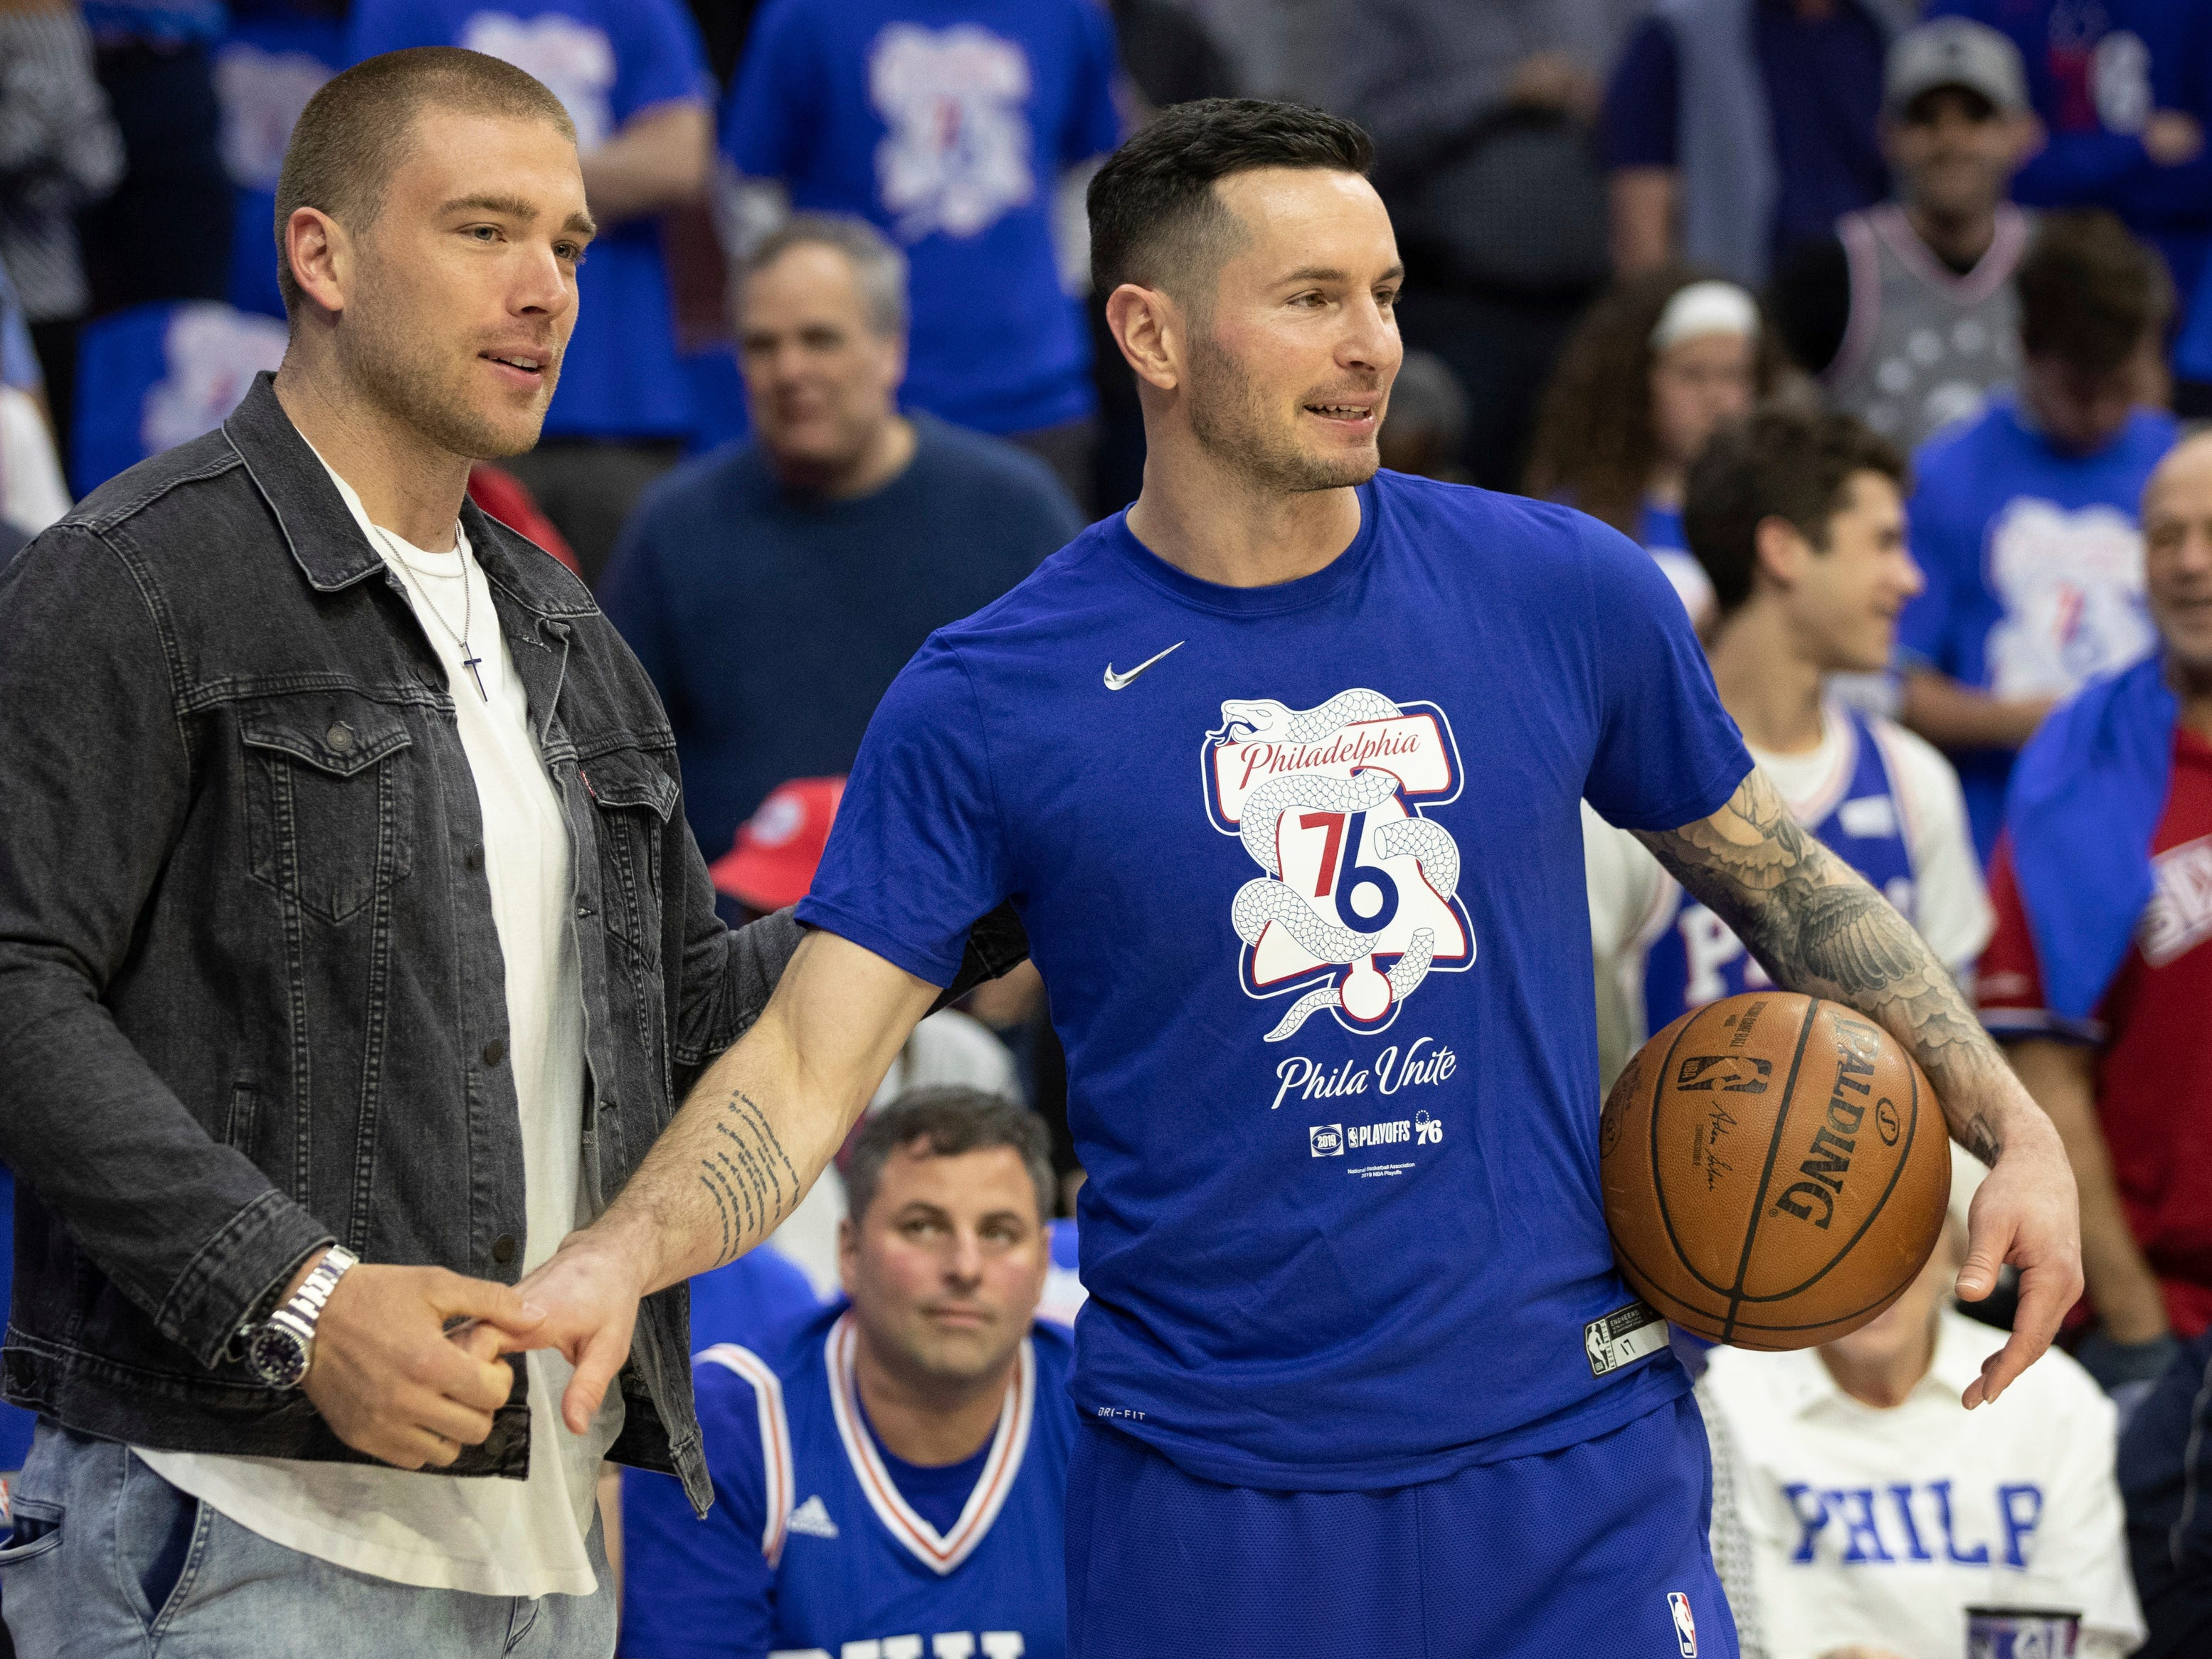 April 13: 76ers guard JJ Redick, right, talks with Eagles tight end Zach Ertz prior to the first half of Game 1 against the Nets in Philadelphia.